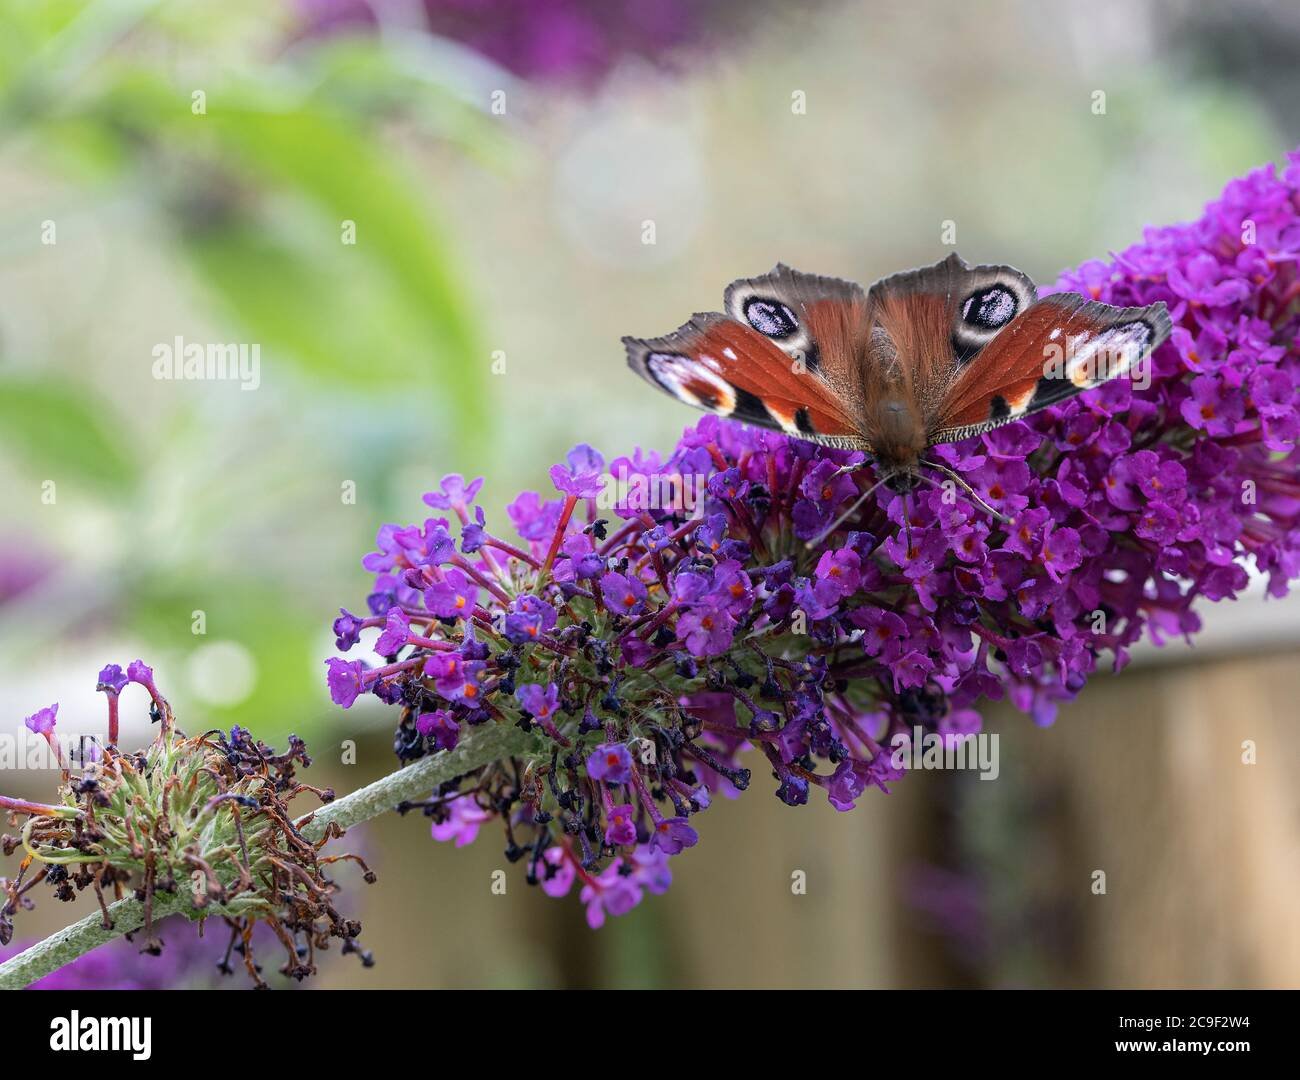 A Beautiful Peacock Butterfly Feeding on Nectar on a Purple Buddleja Flower in a Garden in Alsager Cheshire England United Kingdom UK Stock Photo